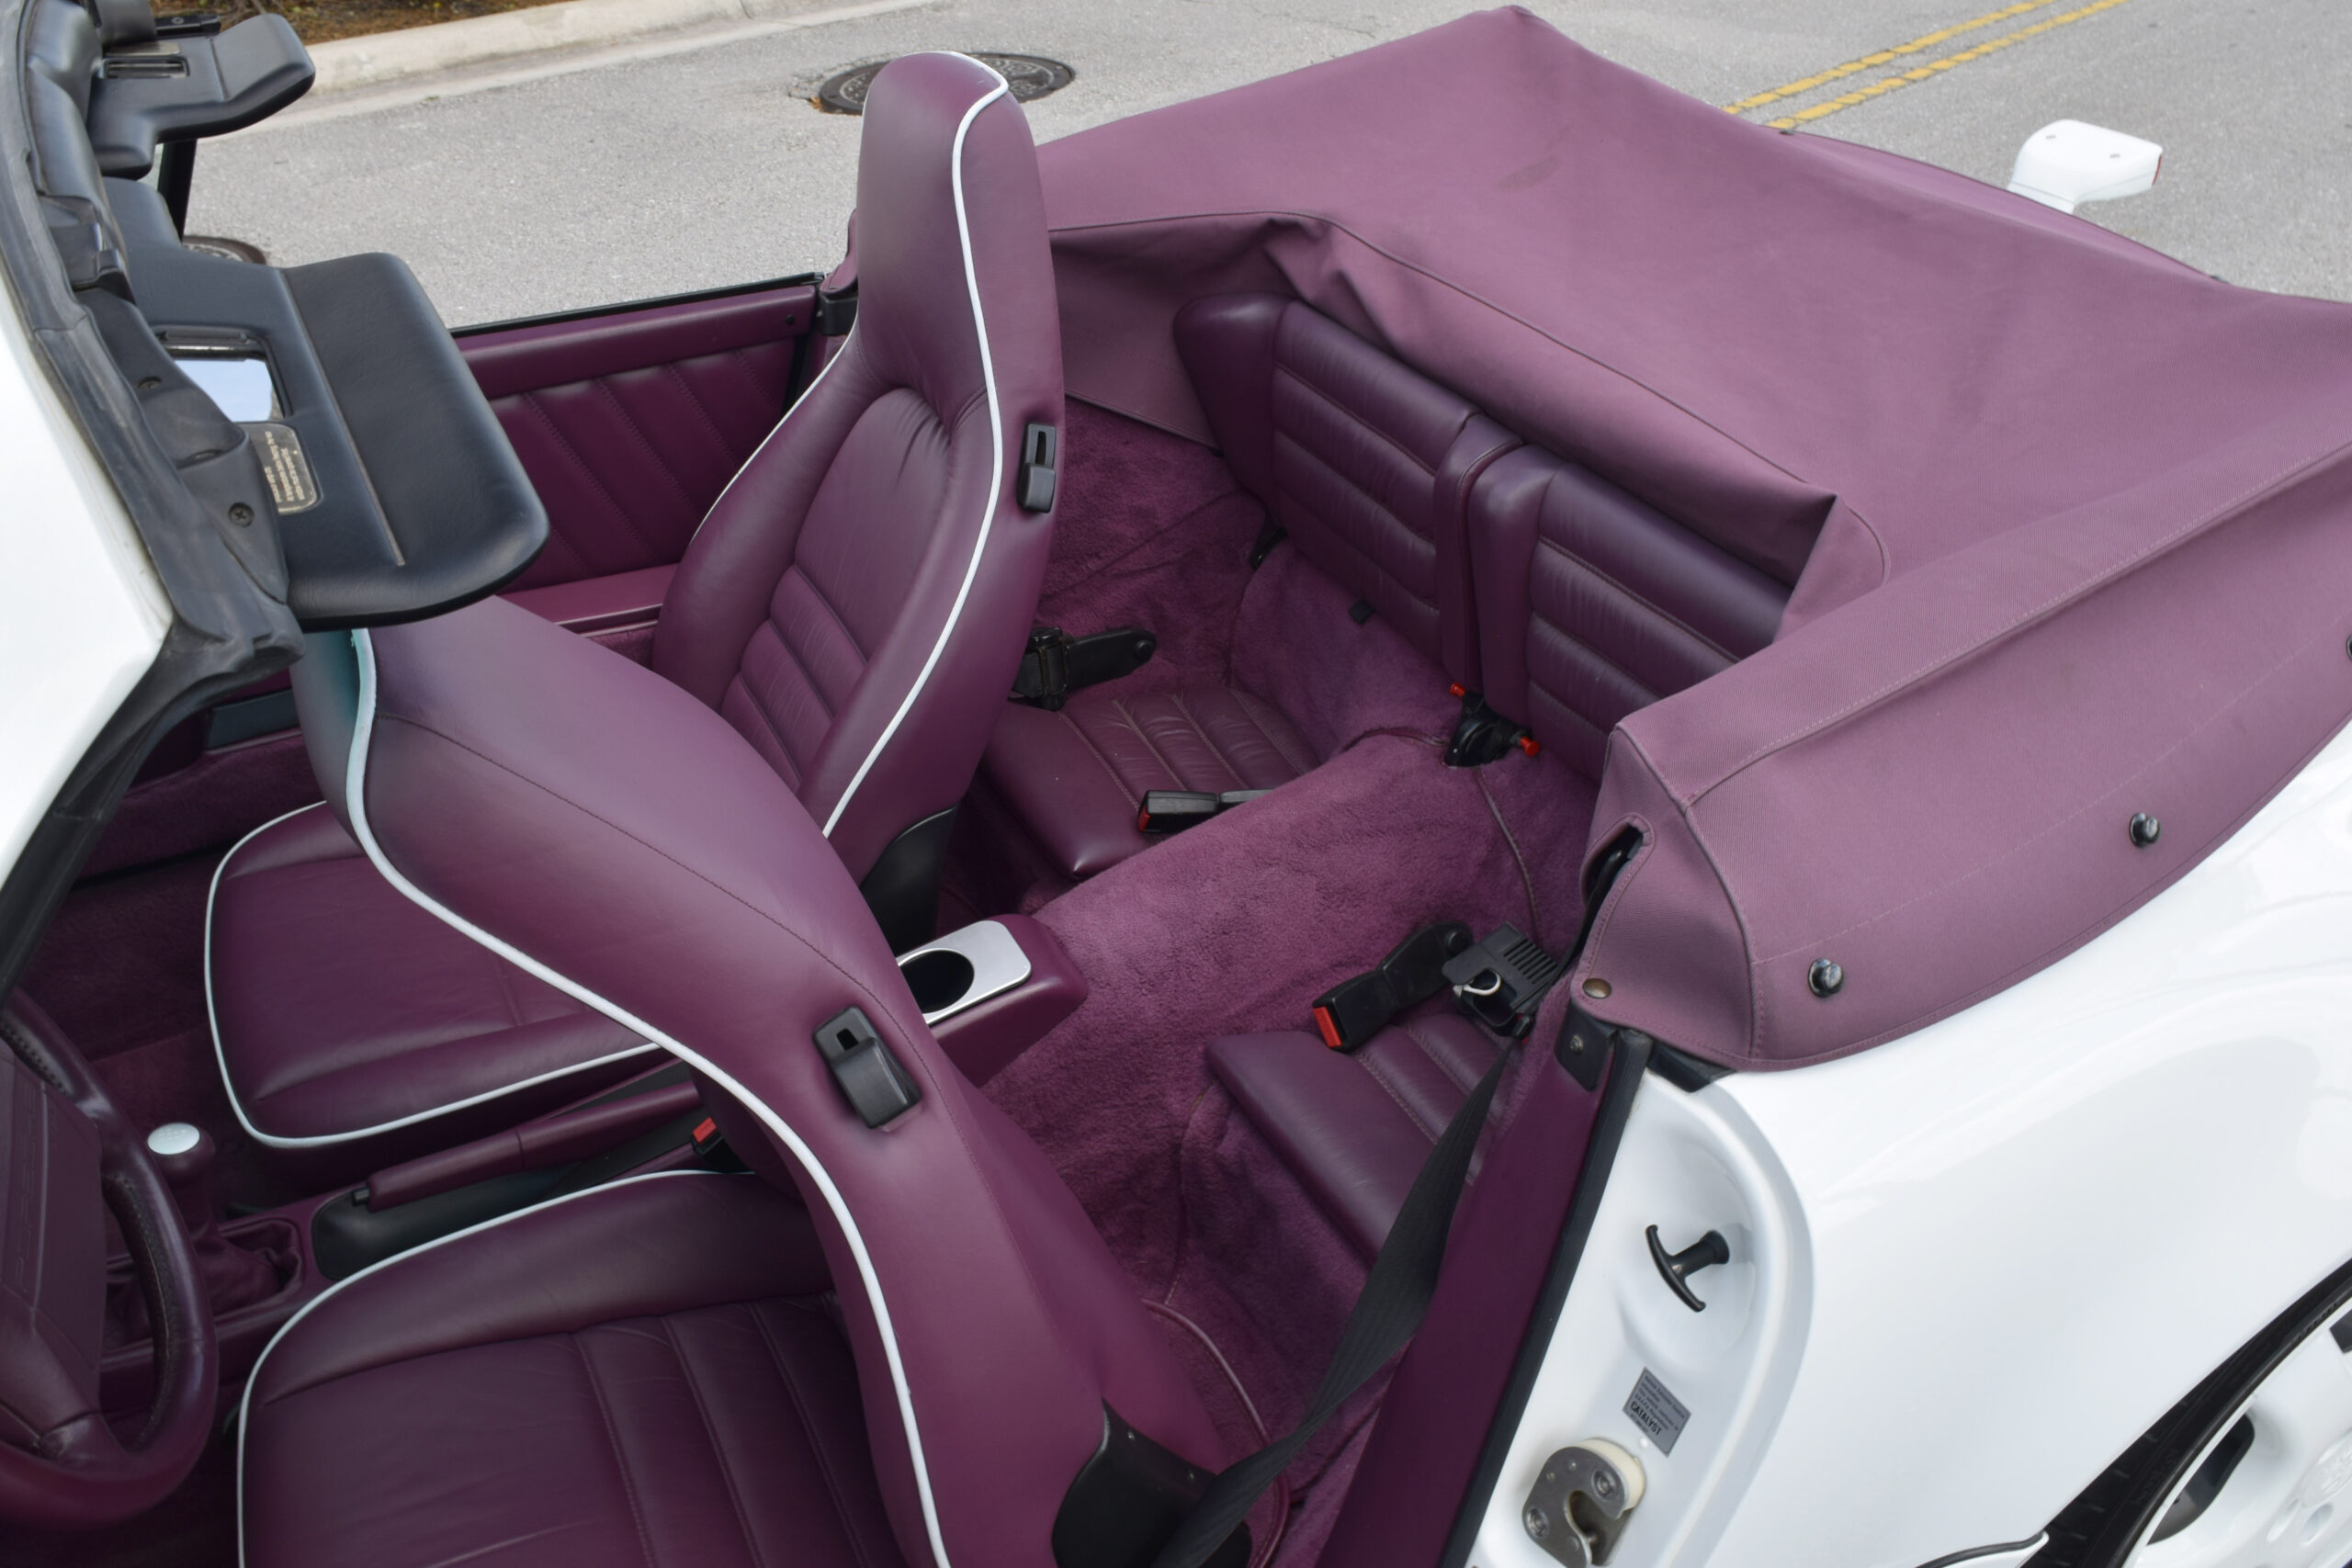 1991 Carrera 2 Cabrio, Interior to sample Full leather Magenta, Supercharged, LSD, Cups